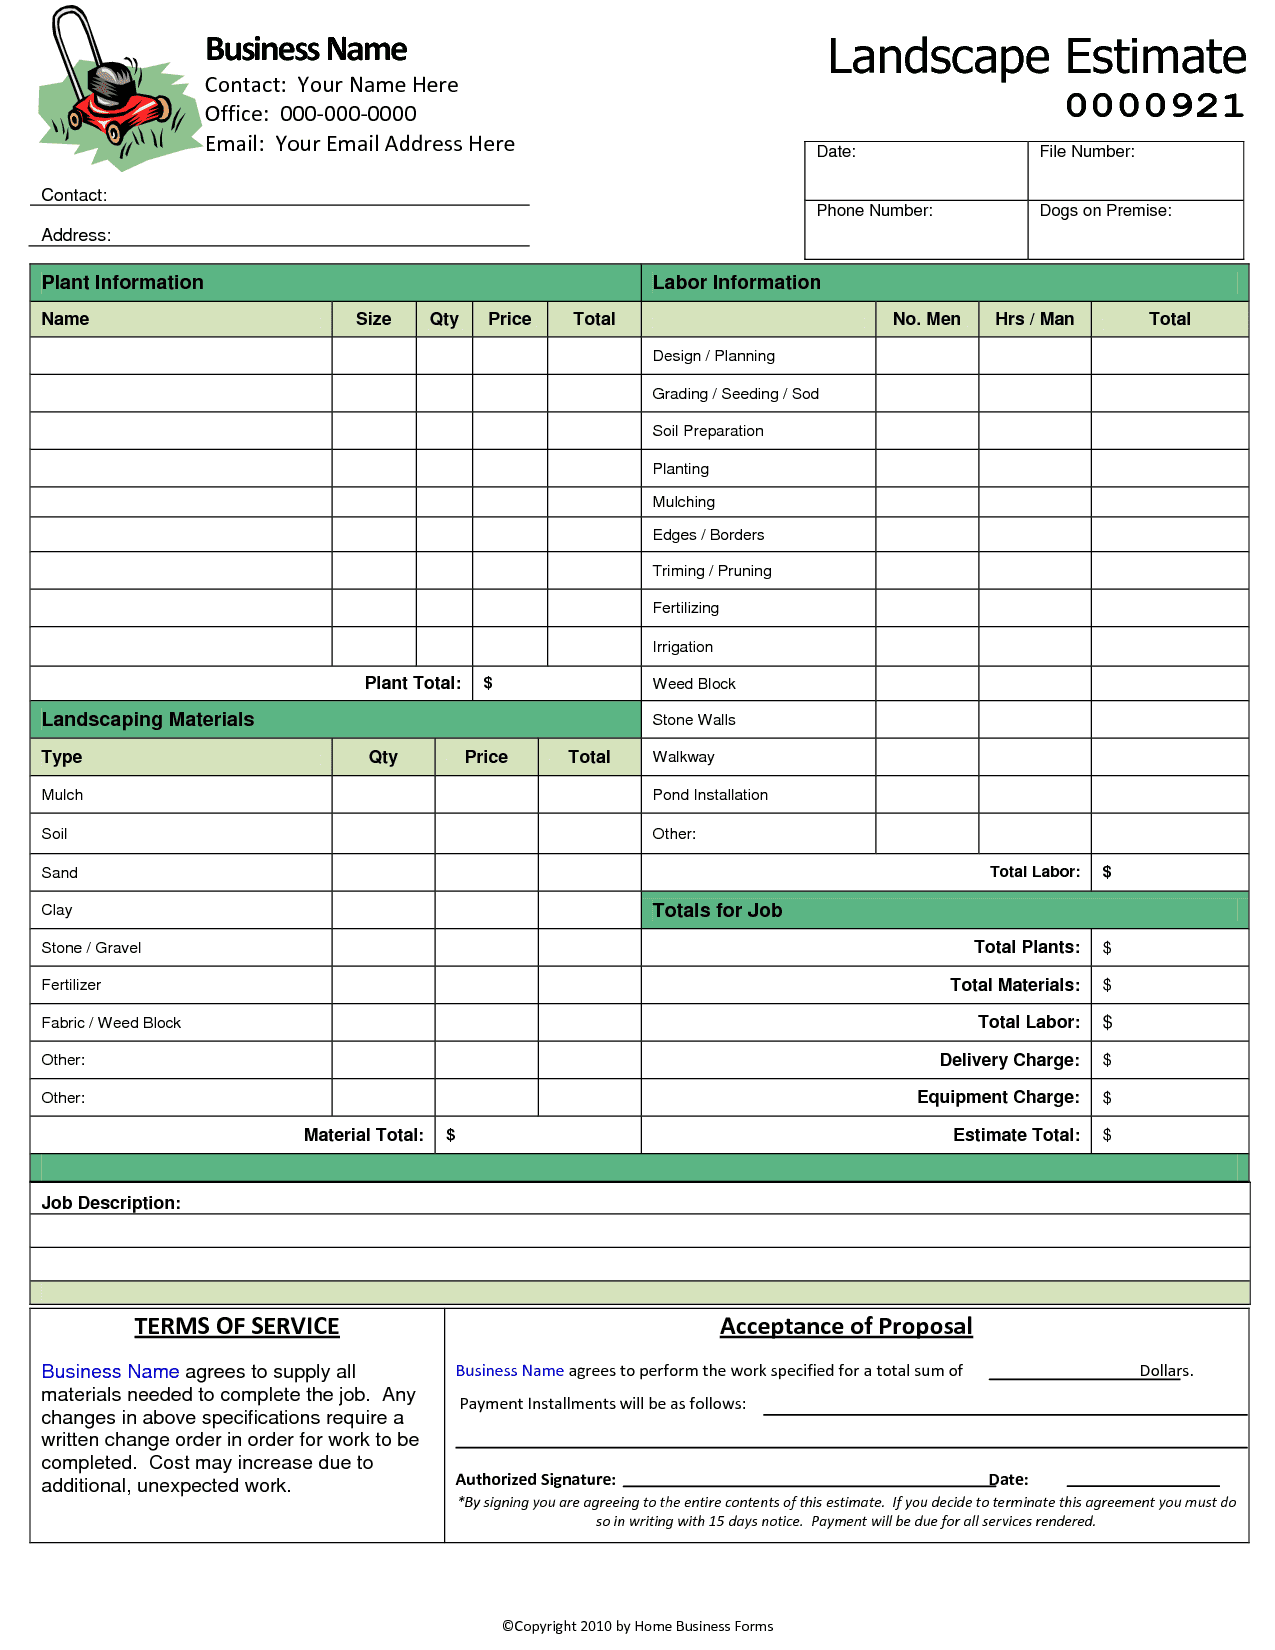 Free Lawn Care Templates Downloads And Landscaping Proposal Template